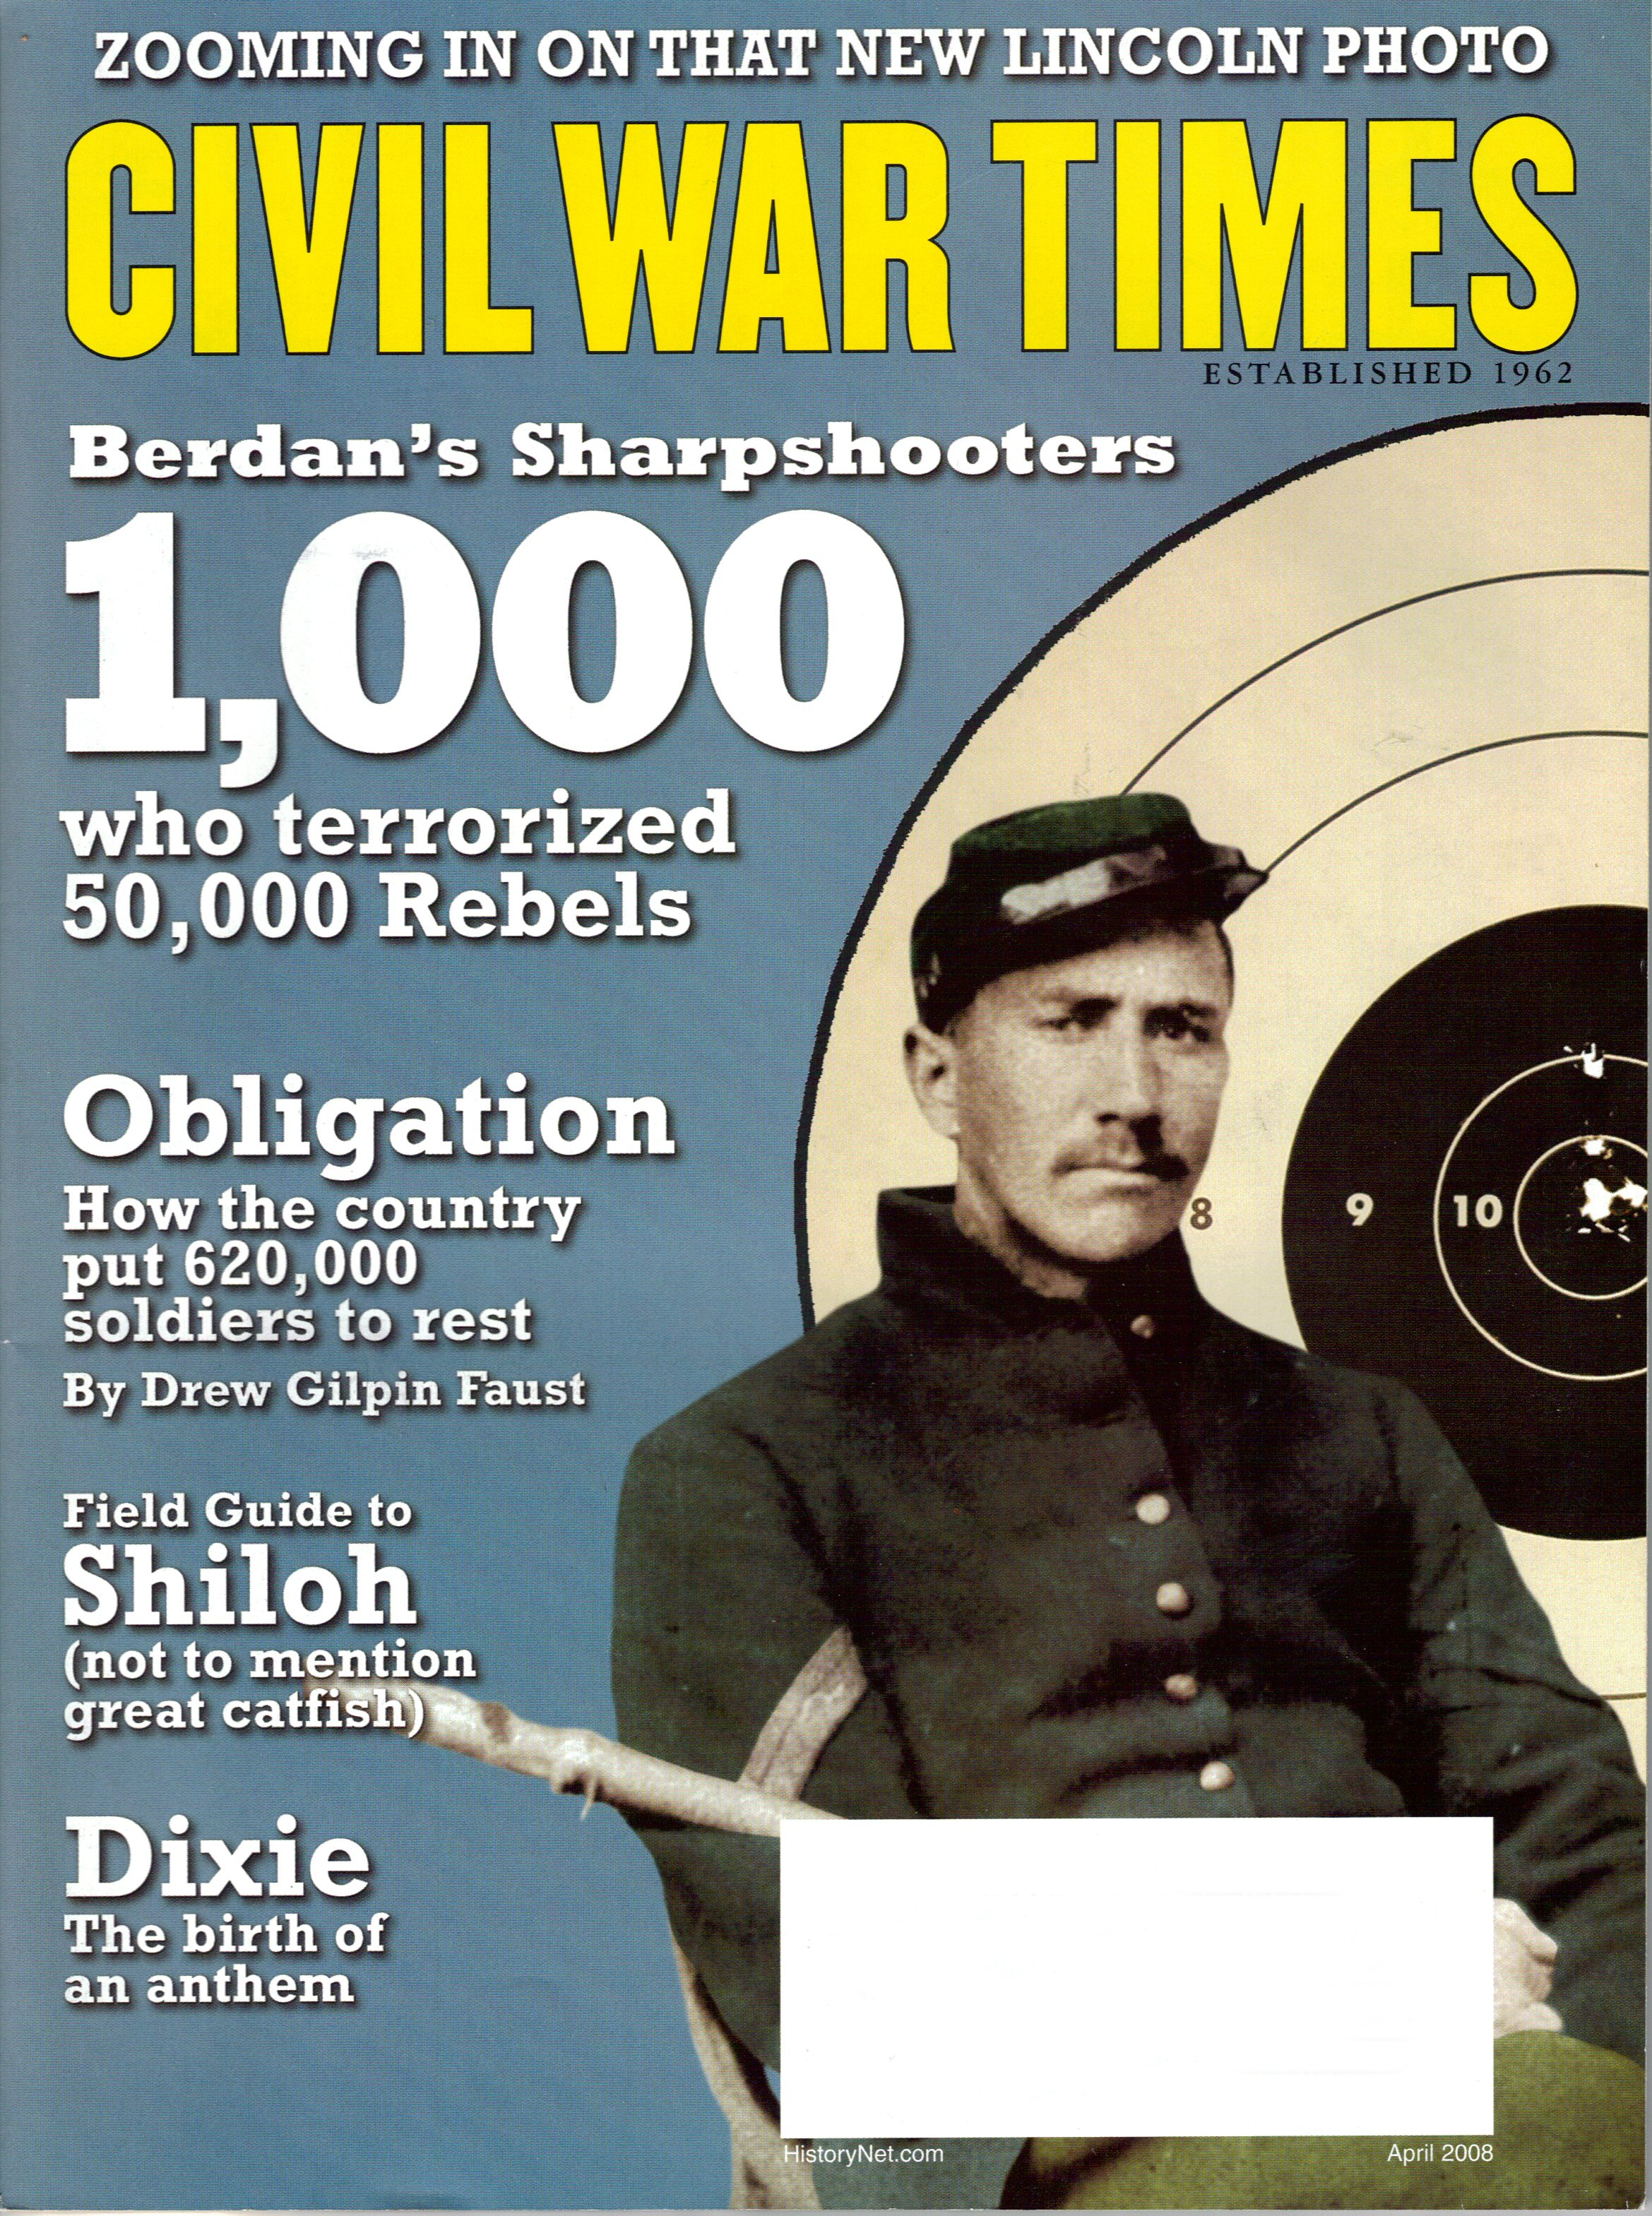 Civil War Times, Volume 47, Number 2 (April 2008)